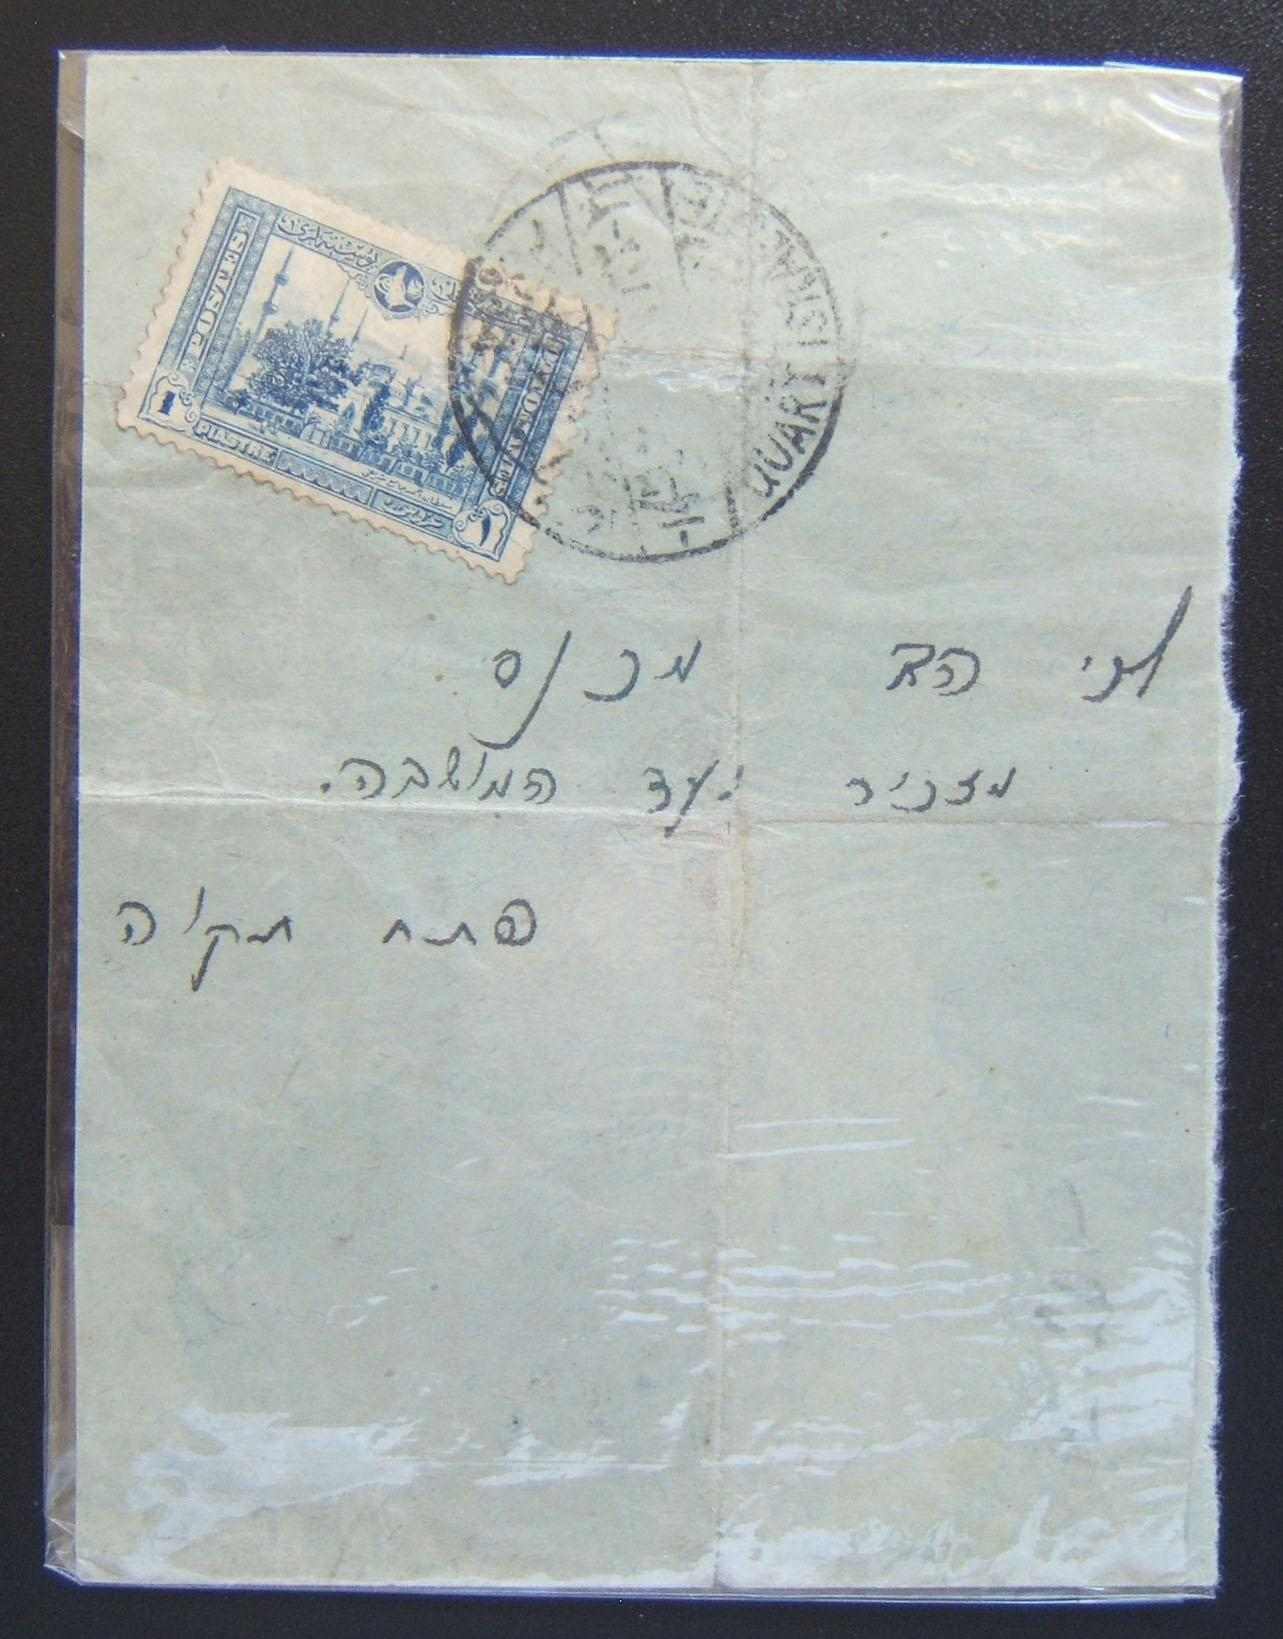 Ottoman Jewish Quarter mail: half of commercial cover ex Jewish Quarter to secretary of the Moshav committee of Petach Tikva; postmarked Jerusalem (date unclear) using pmk 843 and